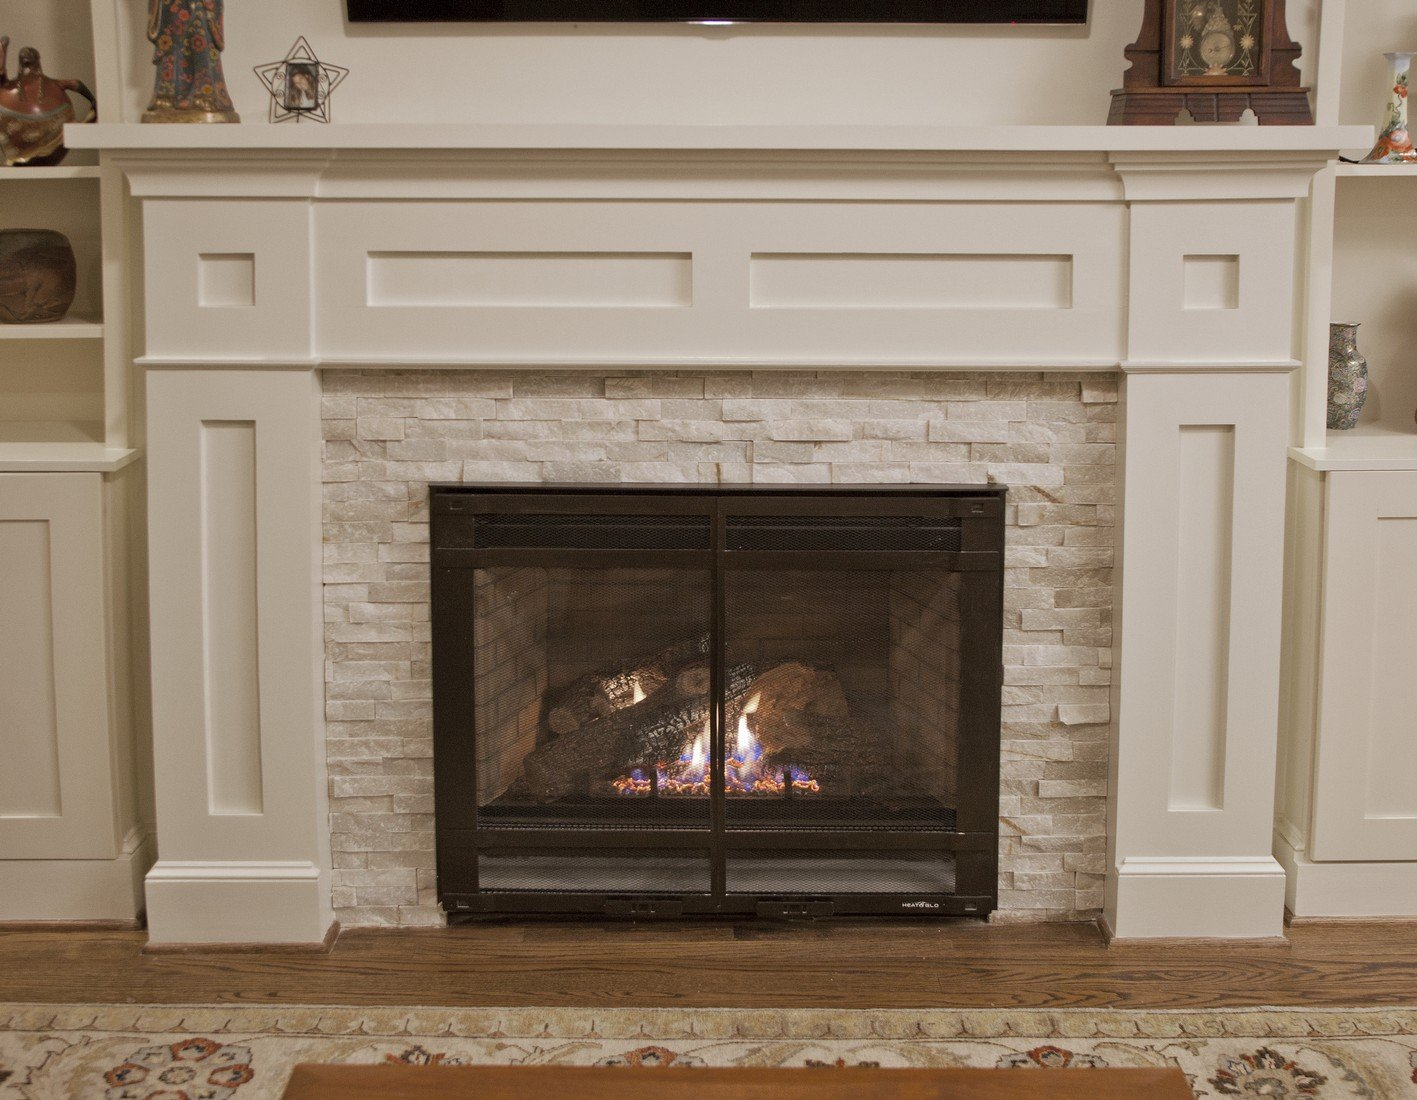 Vent free gas fireplaces are they safe homeadvisor Fireplace ideas no fire